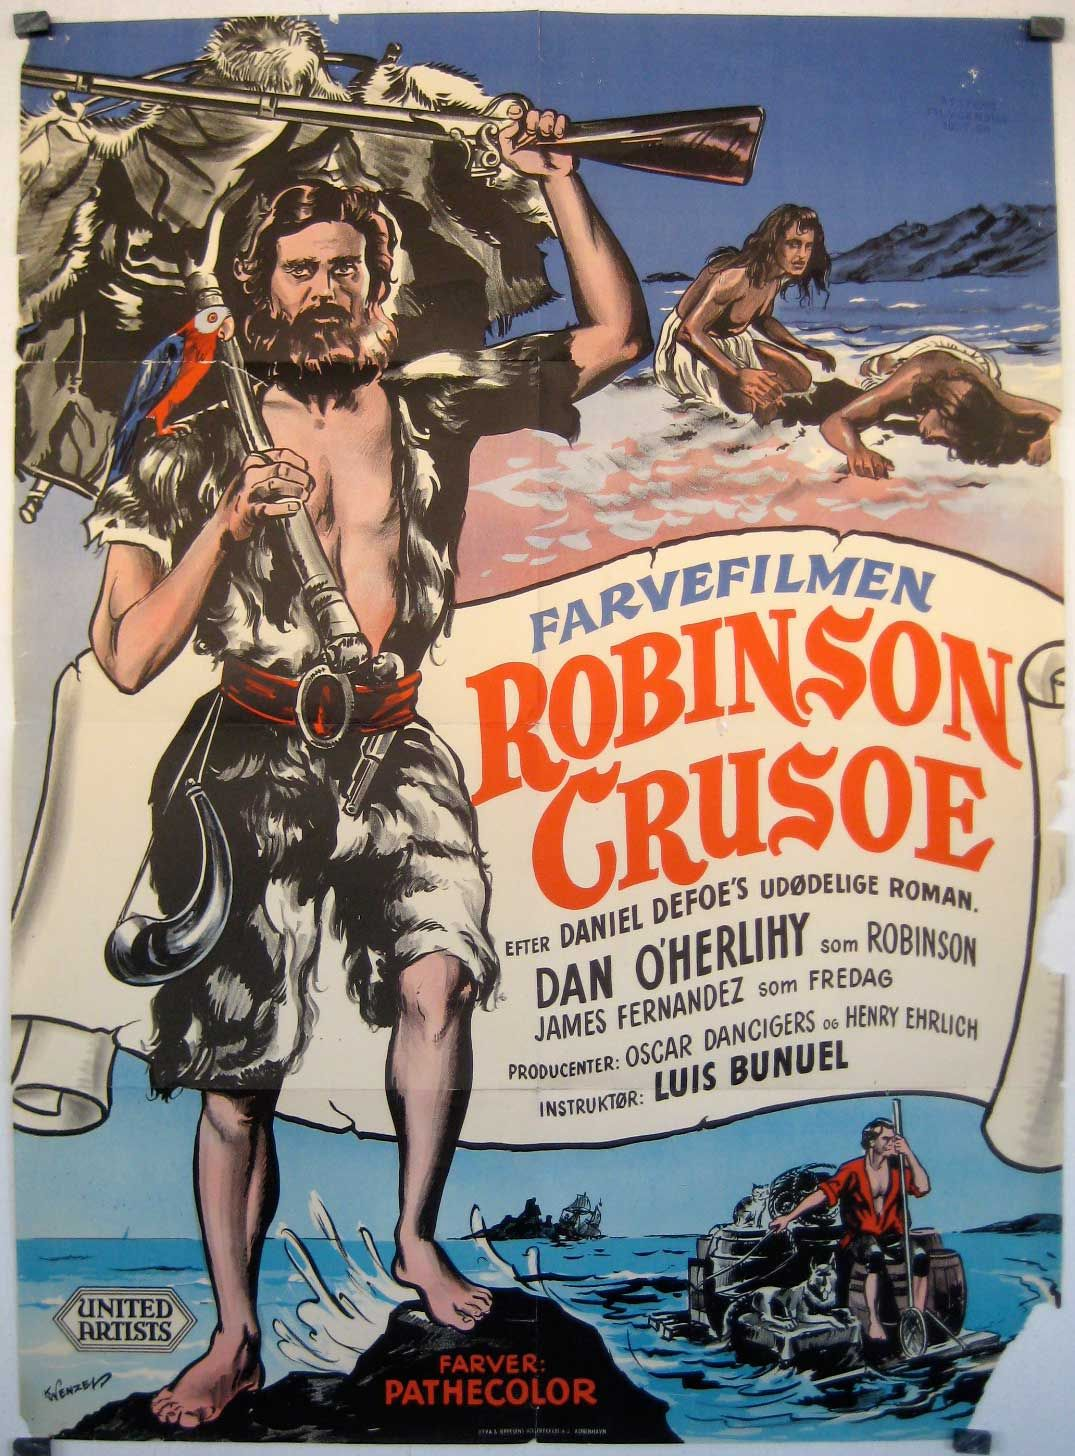 isolation in robinson crusoe Mar 4, 2016 the novel of robinson crusoe, by daniel defoe, is an autobiography of an individual man who spends many years on an isolated island.